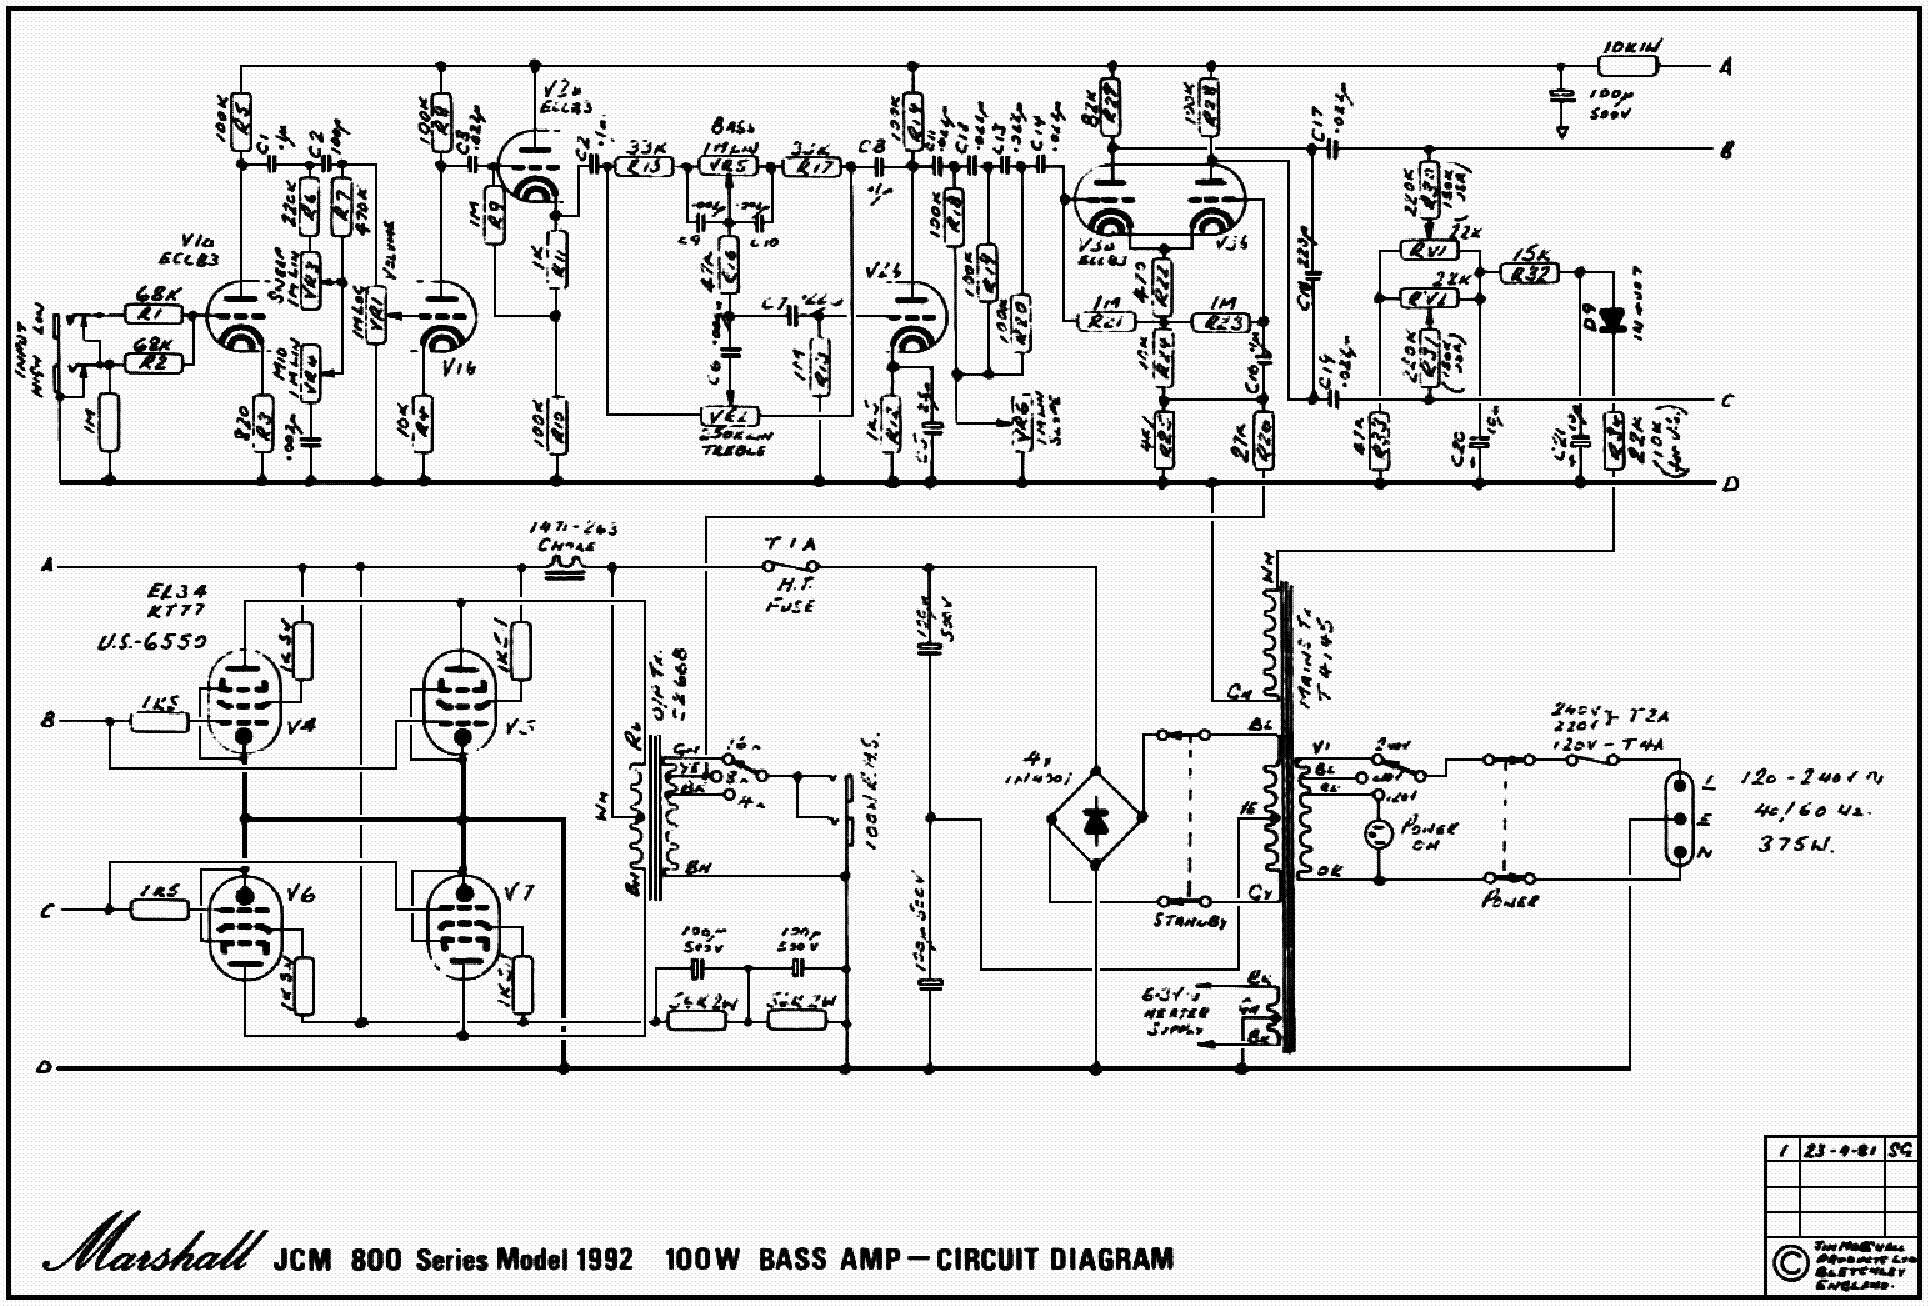 Jcm 800 Bass Series Schematic Black Swan Plot Meaning Marshall Plexi Wiring Diagram It Isnt Clear If These Amps Were Actually Part Of The Jcm800 Schematics 2001 375w Head Pre Amp 100w Limited Edition